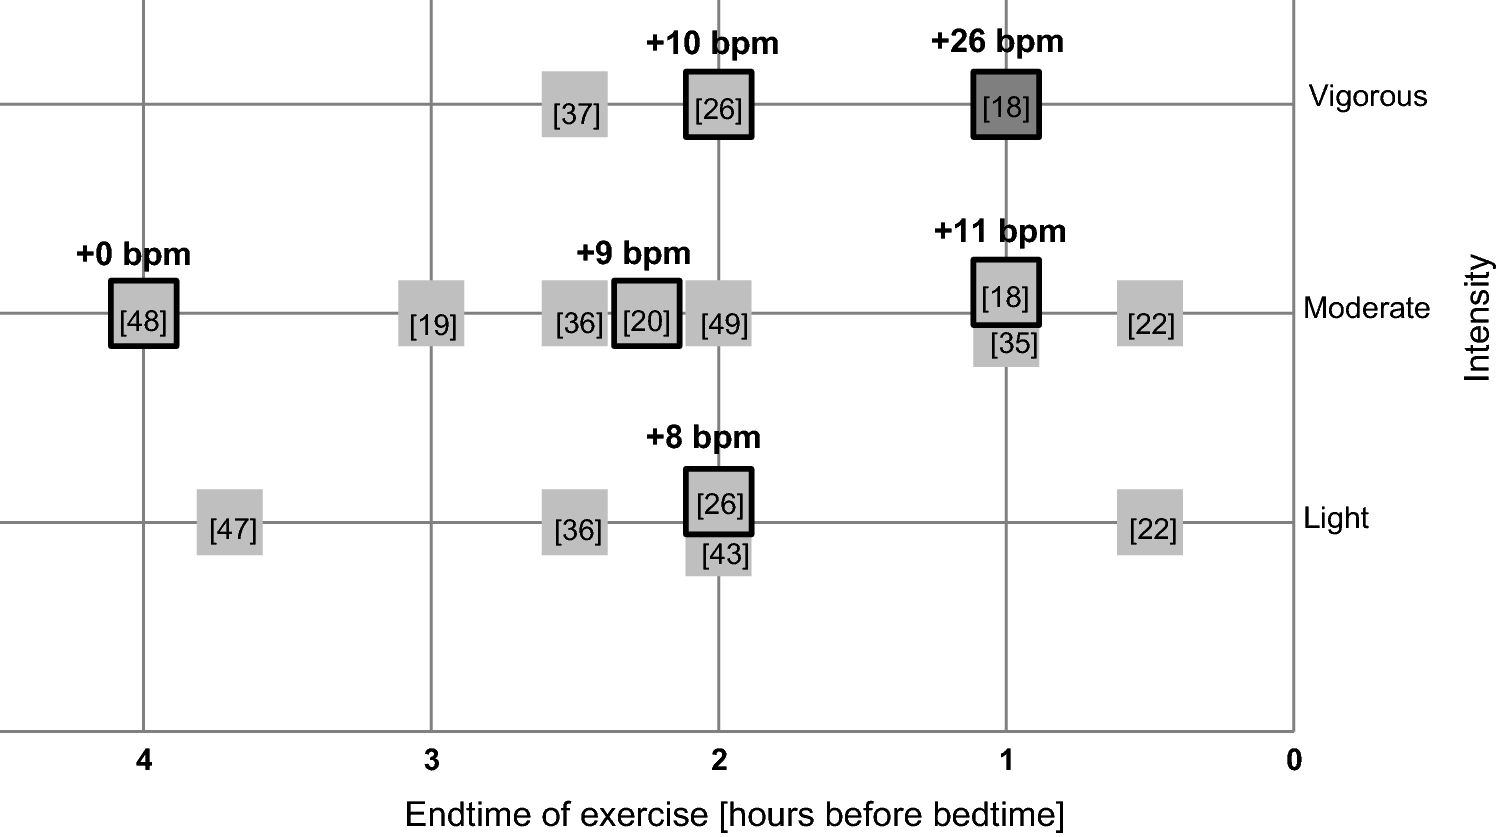 Effects of Evening Exercise on Sleep in Healthy Participants: A